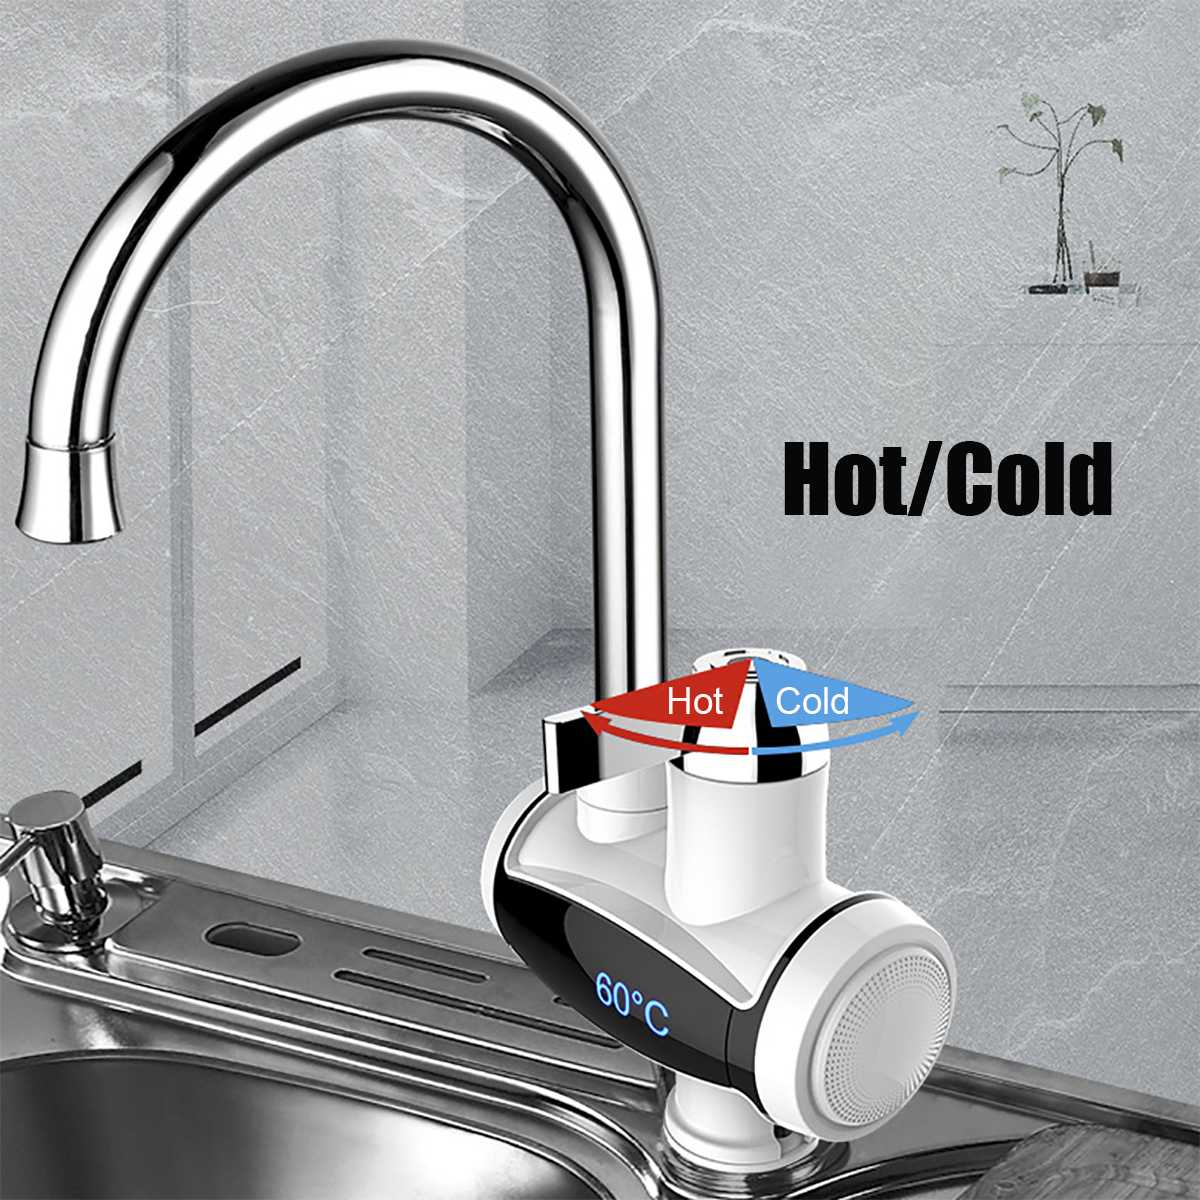 220V 3000W Digital Display Temperature Hot Kitchen Electric Faucet Heater Tap Cold Heating Faucet Instantaneous Water Heater